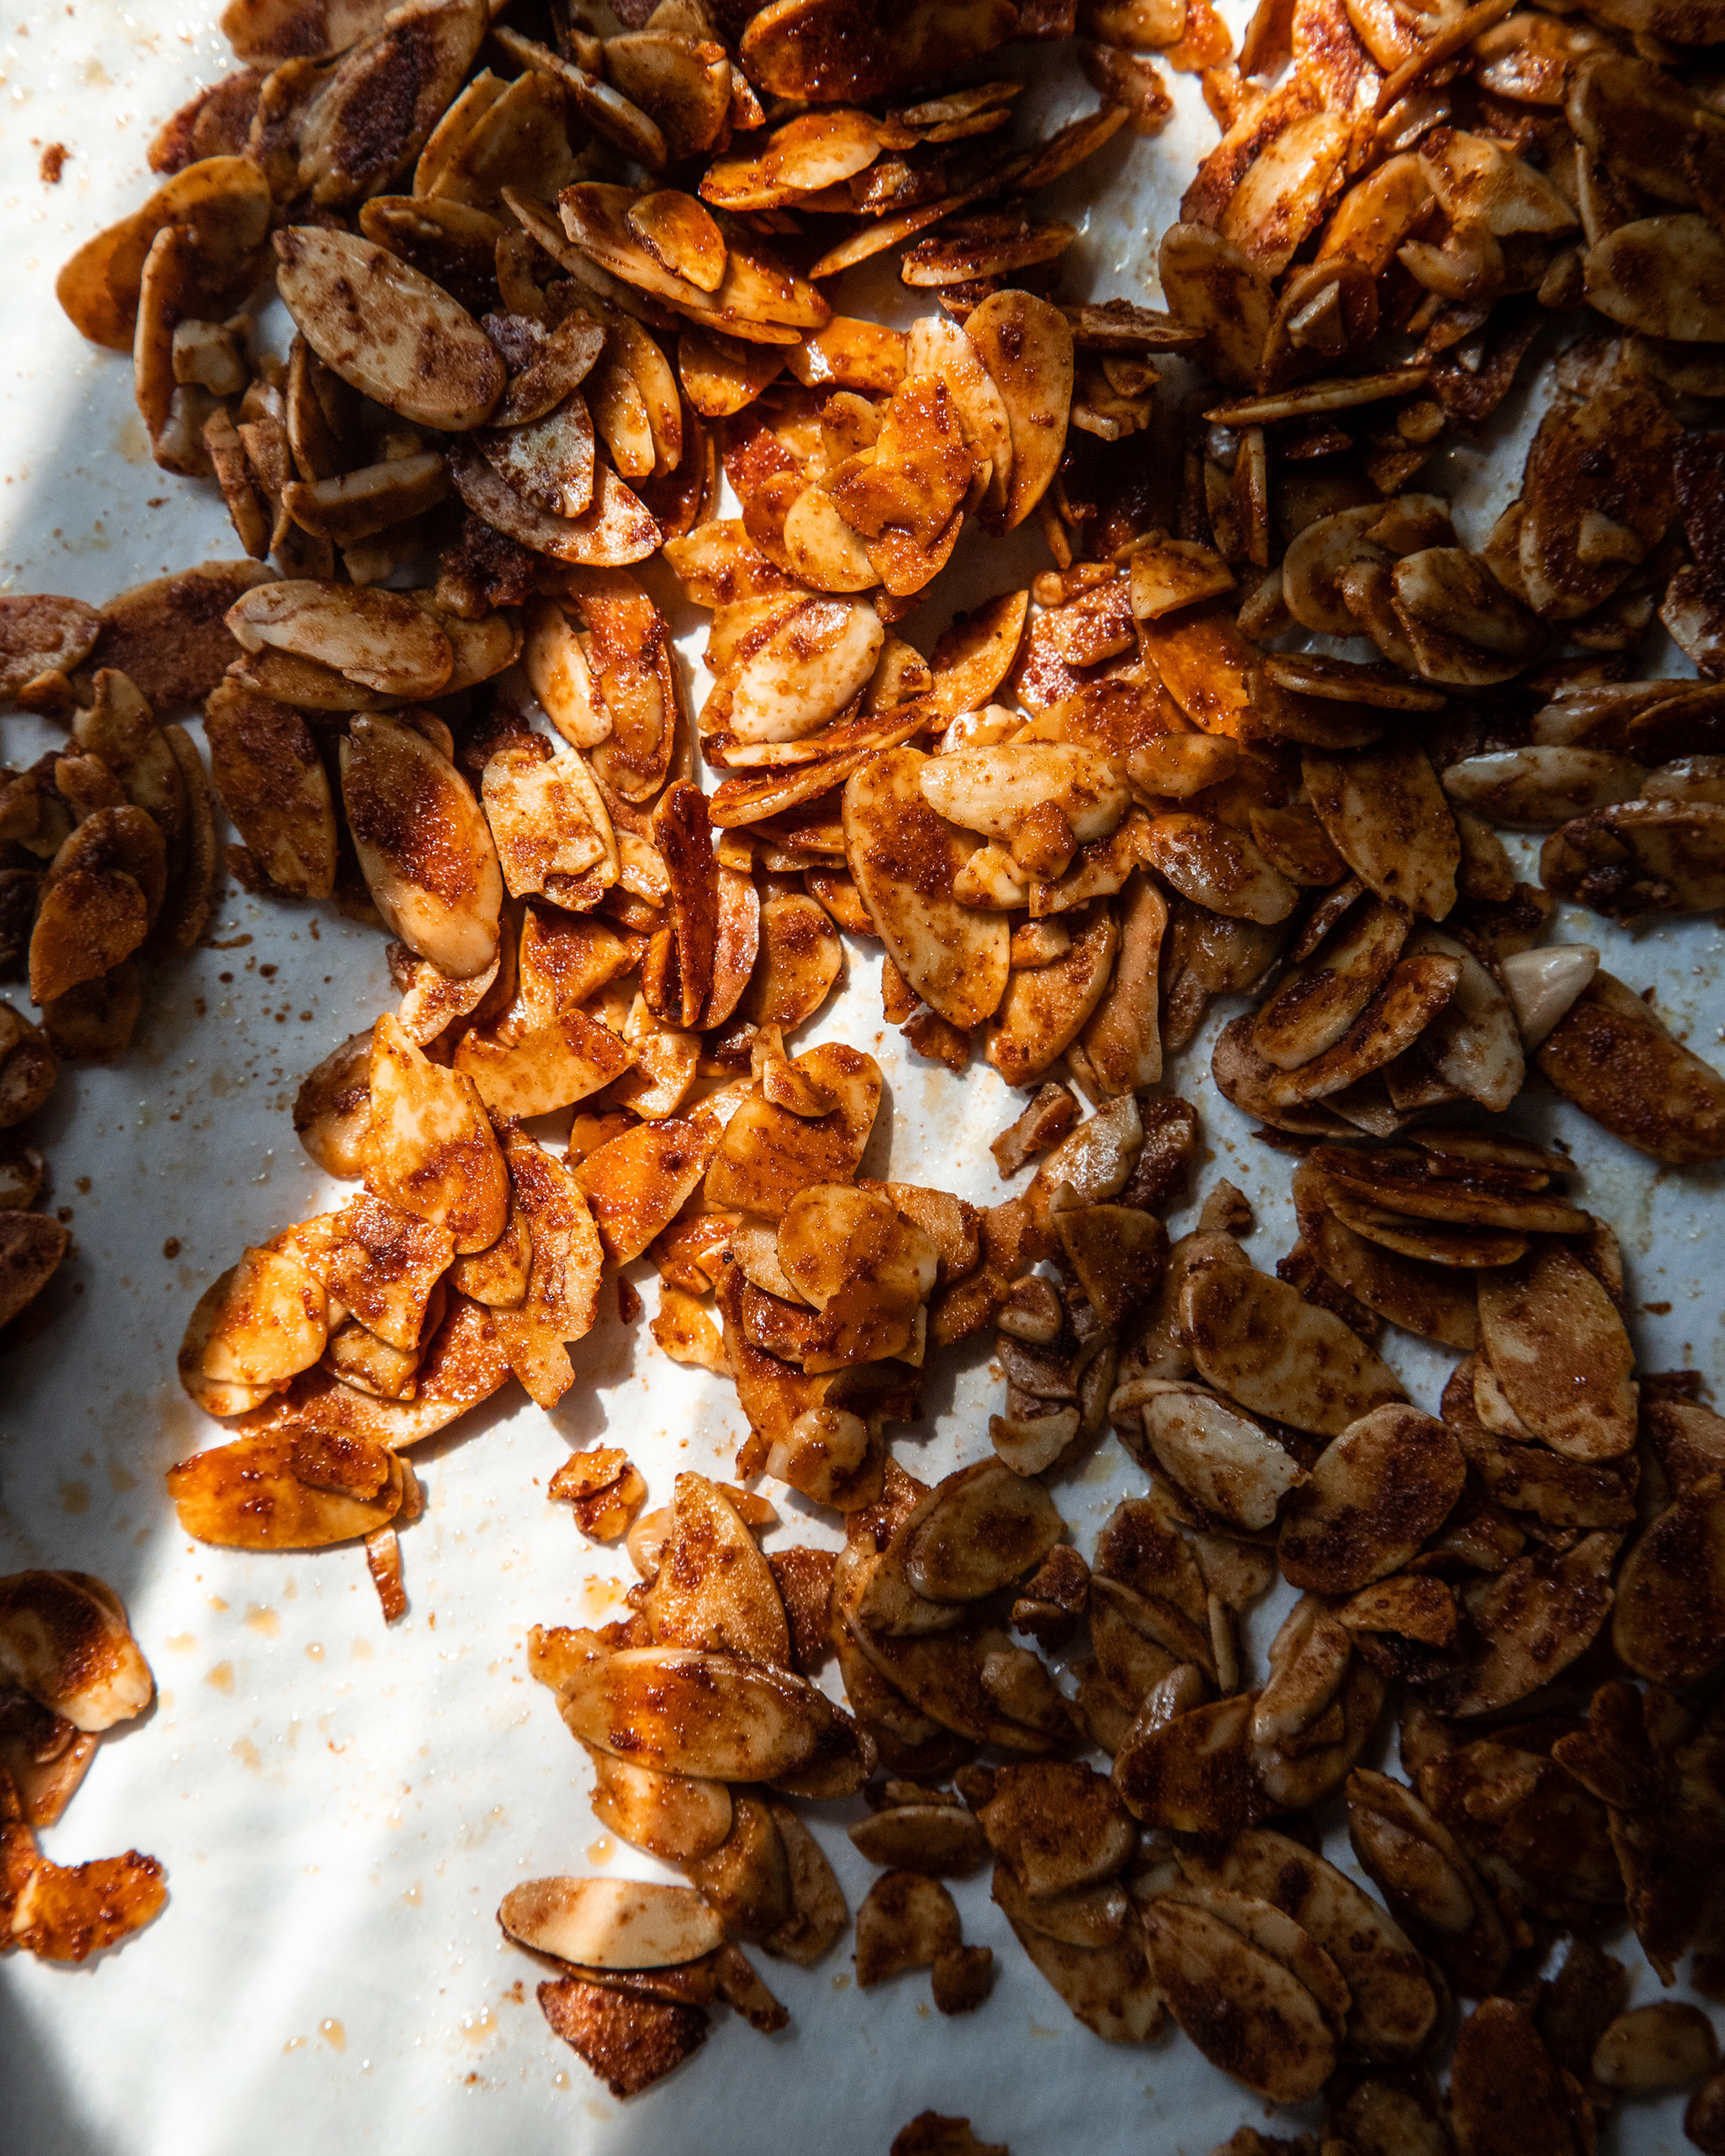 An overhead image of baked and deep brown sliced almonds in high contrast lighting.